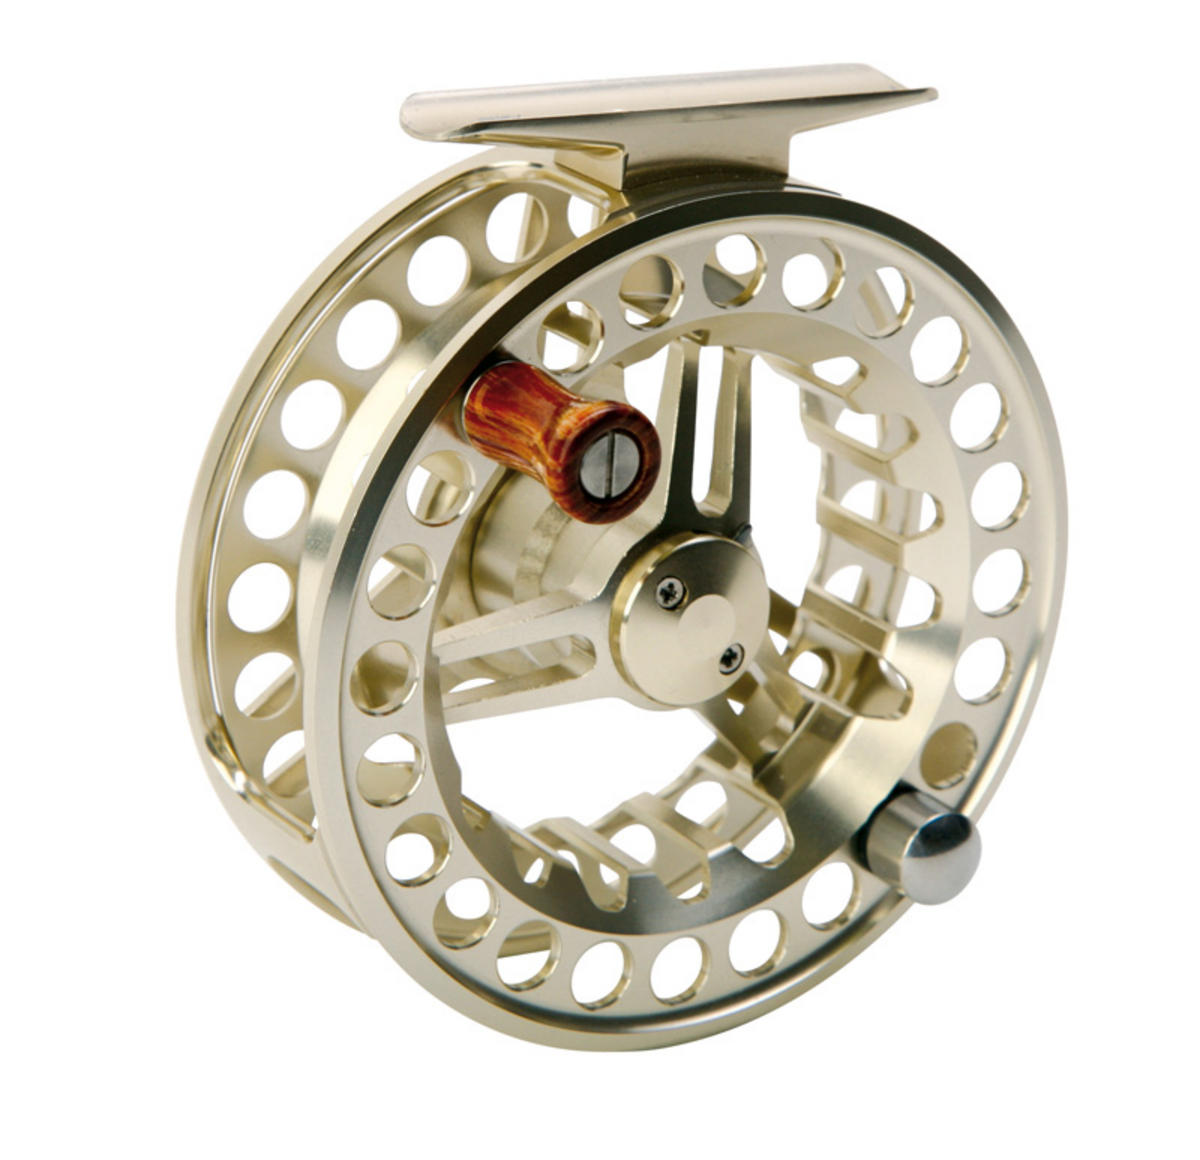 DAIWA LOCHMOR SLA 7/8 Model No LMSLA78 LARGE ARBOR FLY REEL